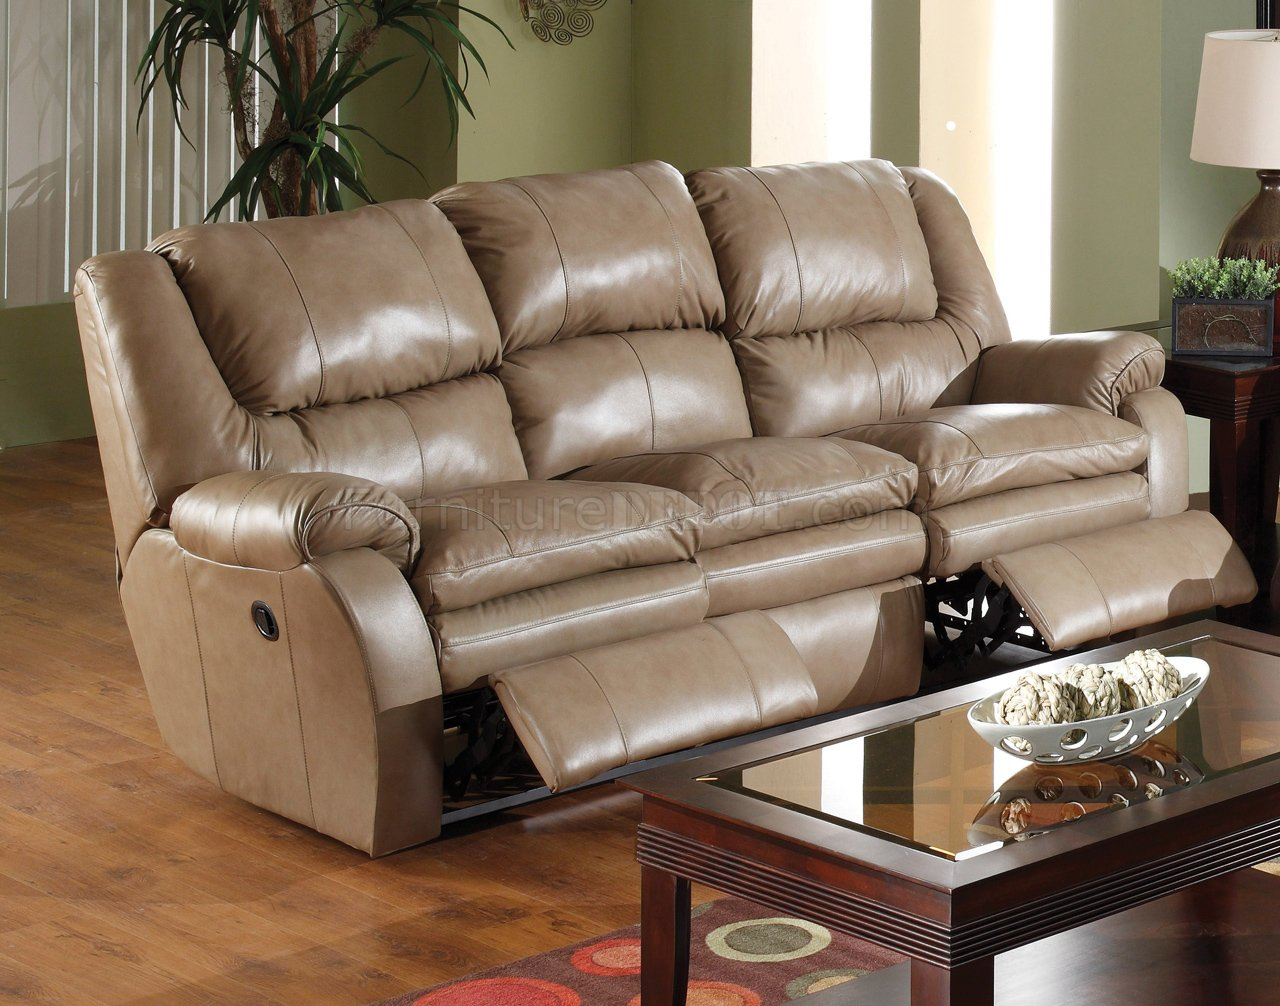 loveseats size and photo sets of ideas ashley sofa catnapper large unforgettable cheap loveseat leather reclining